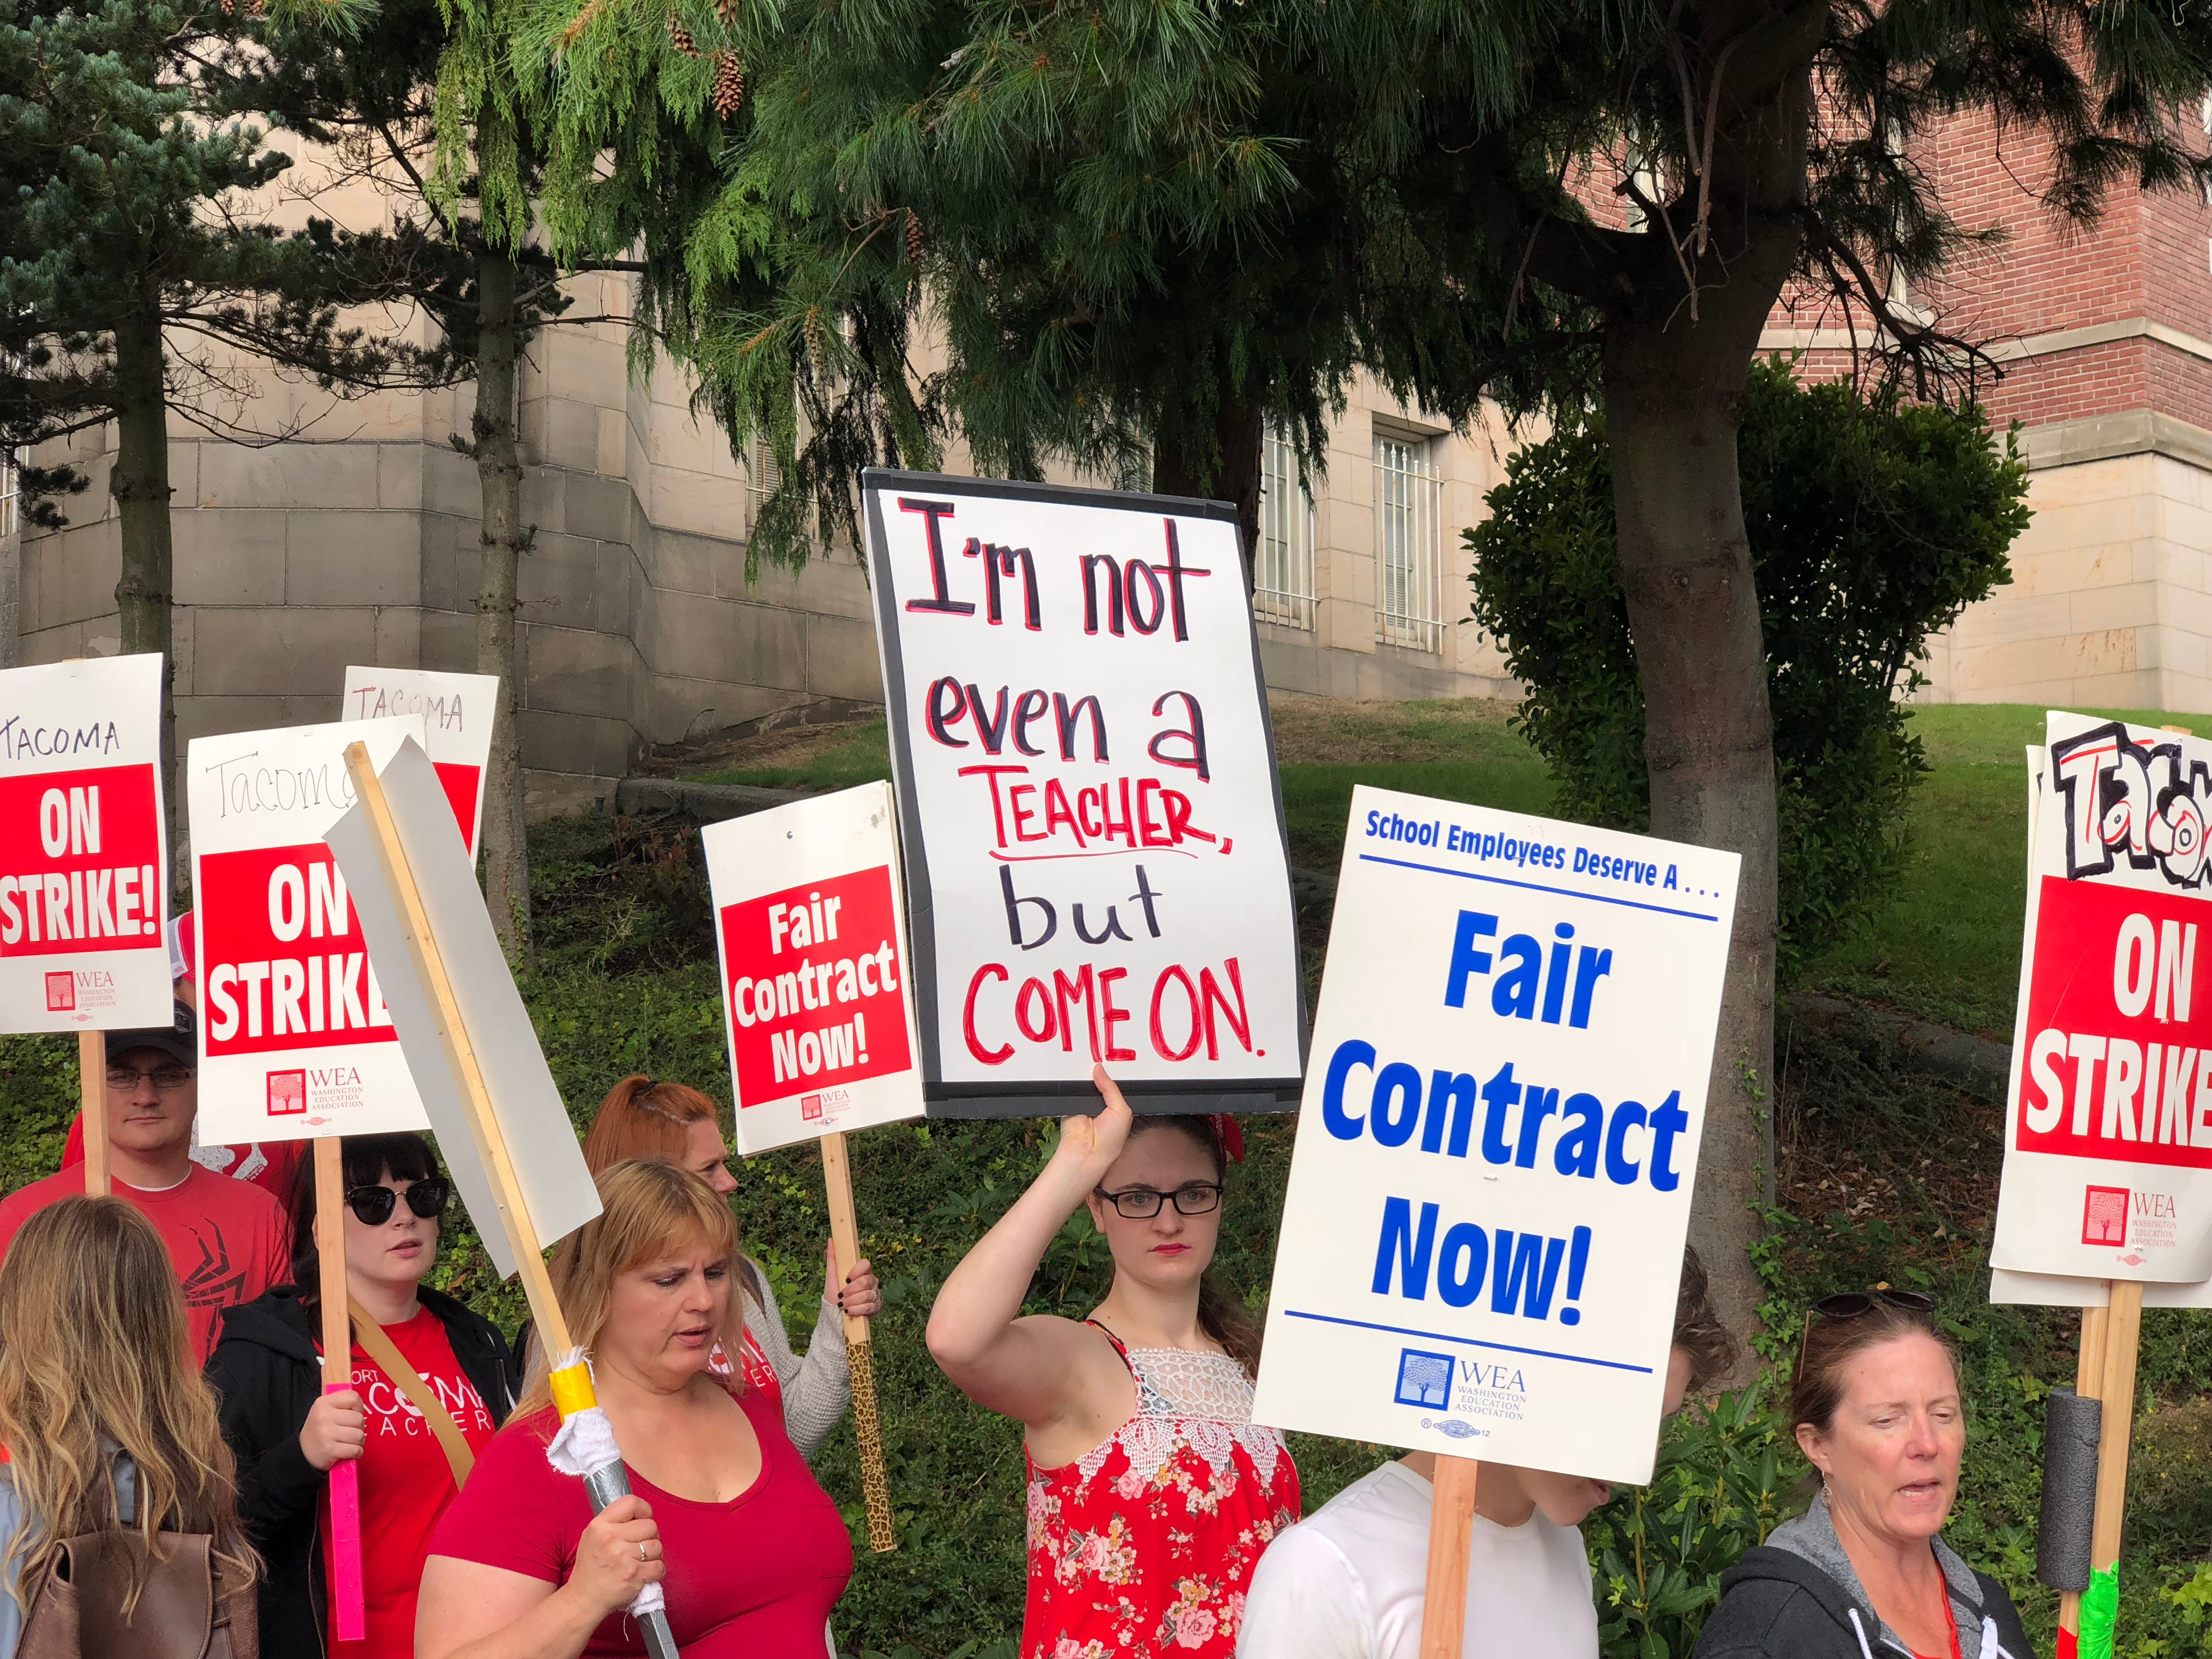 Striking teachers carry picket signs as they march in front of the Tacoma School District Central Administration Building, Monday, Sept. 10, 2018, in Tacoma, Wash.